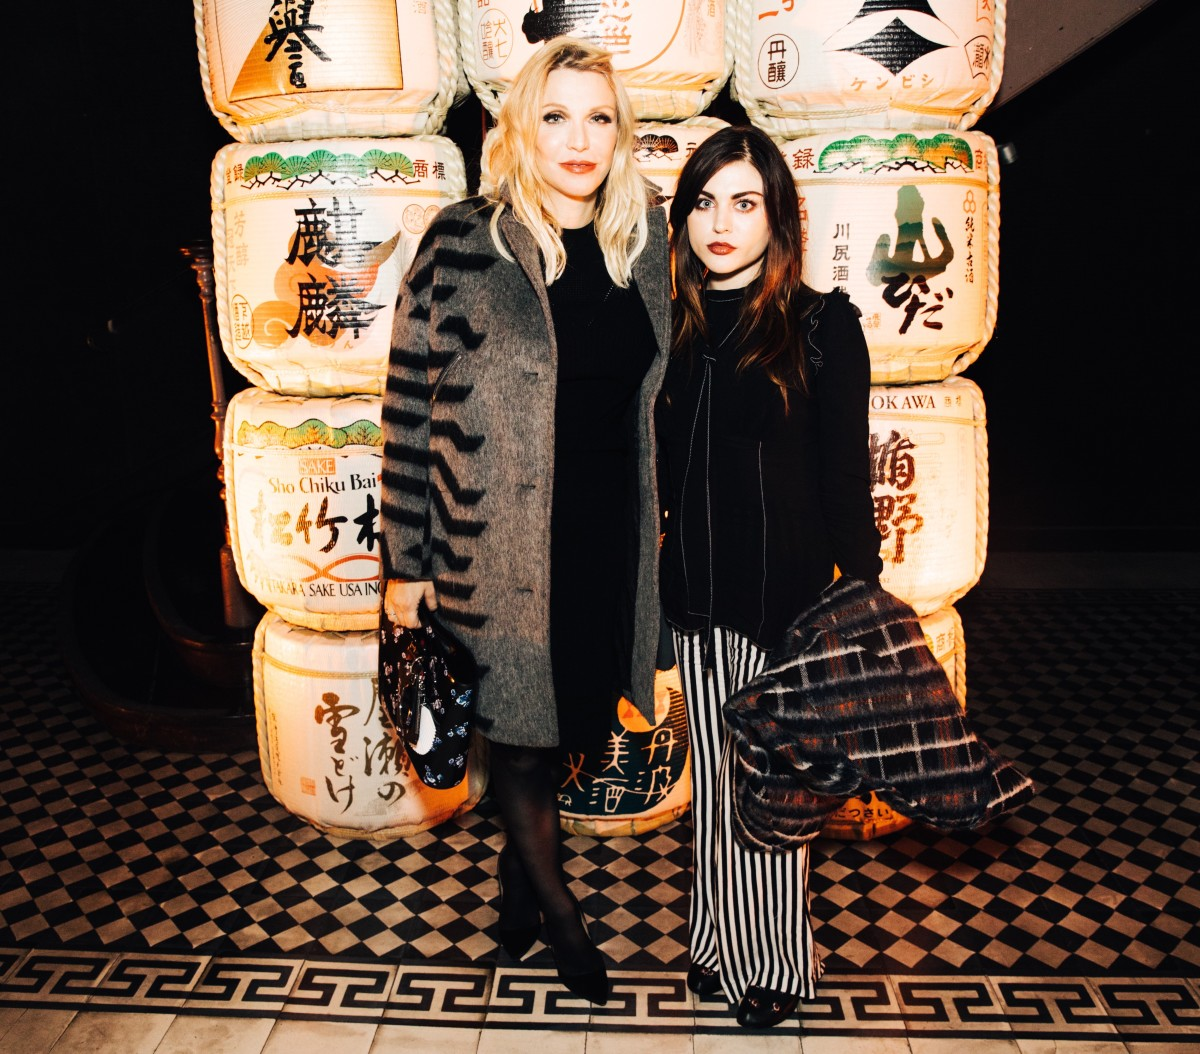 Courtney Love and Frances Bean Cobain. Photo: Courtesy